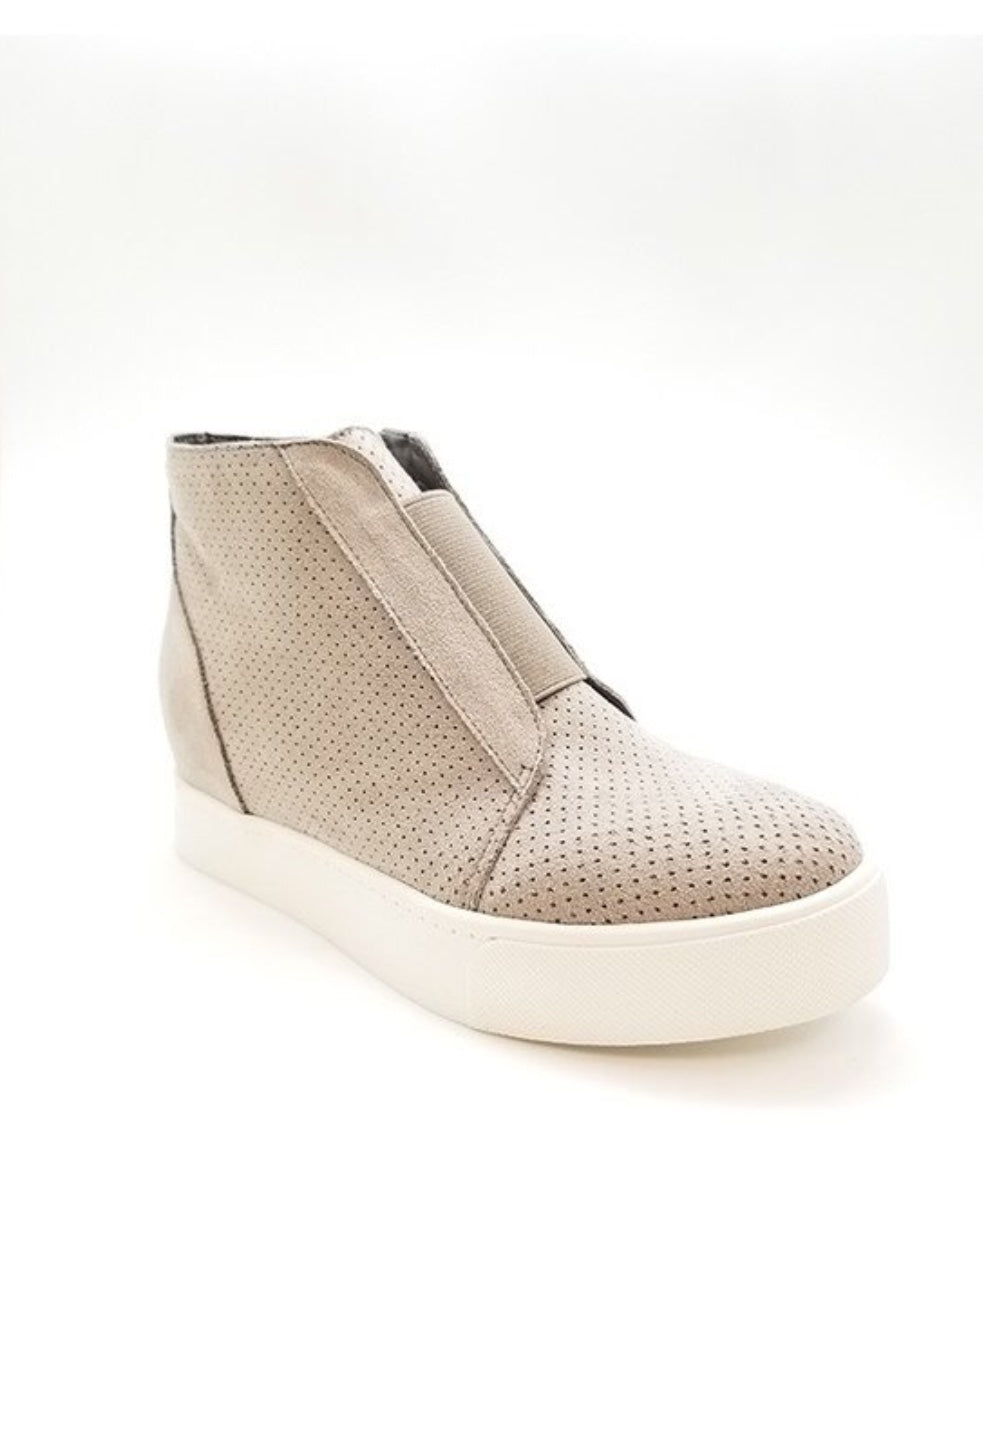 Pointer Hidden Wedge Heel Sneaker Taupe